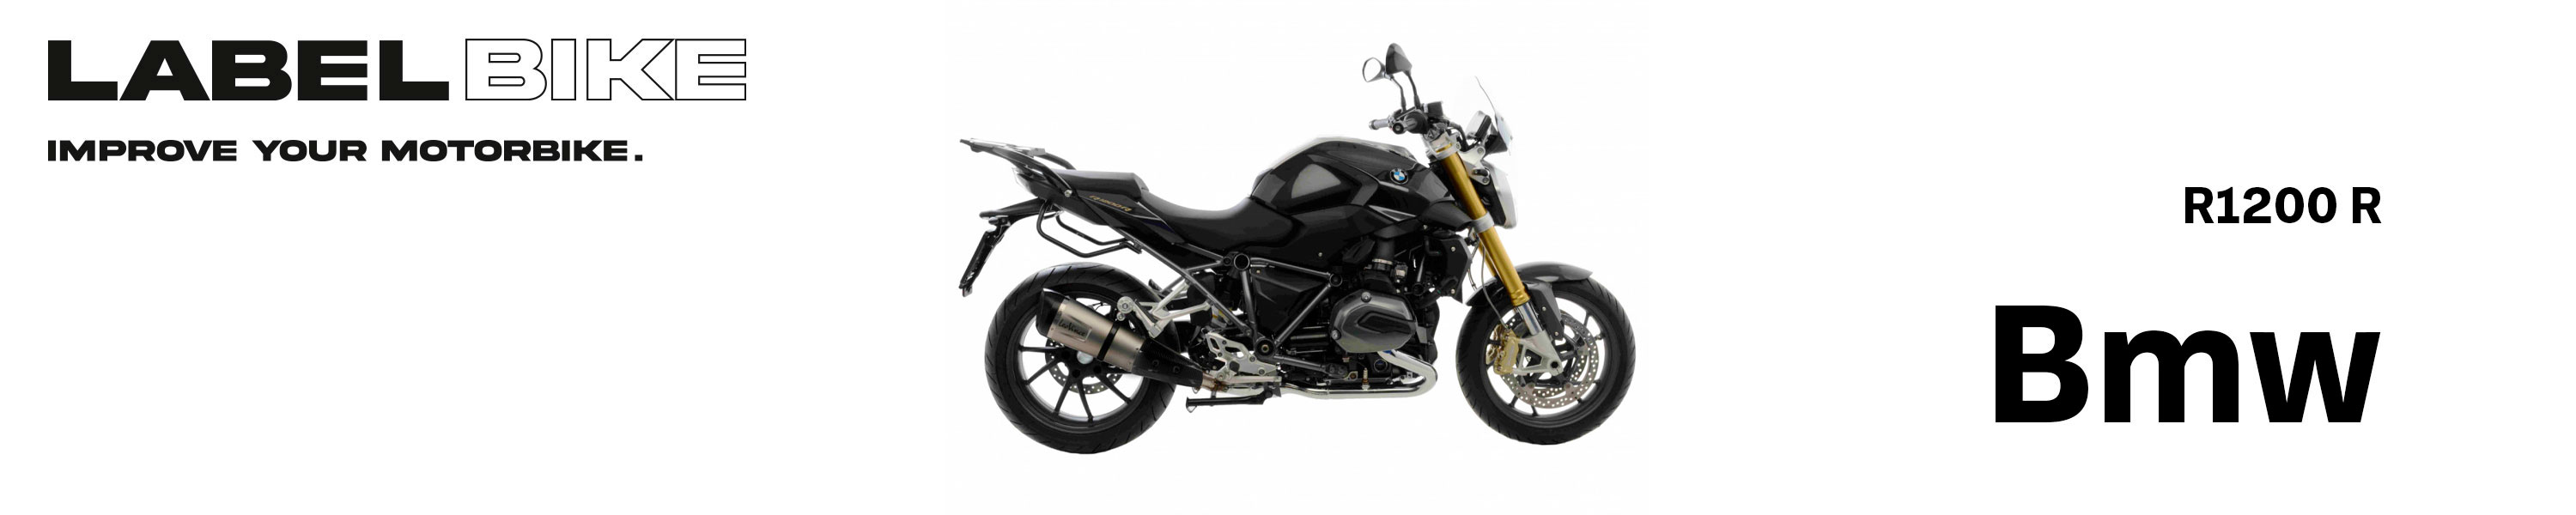 Labelbike R1200 R